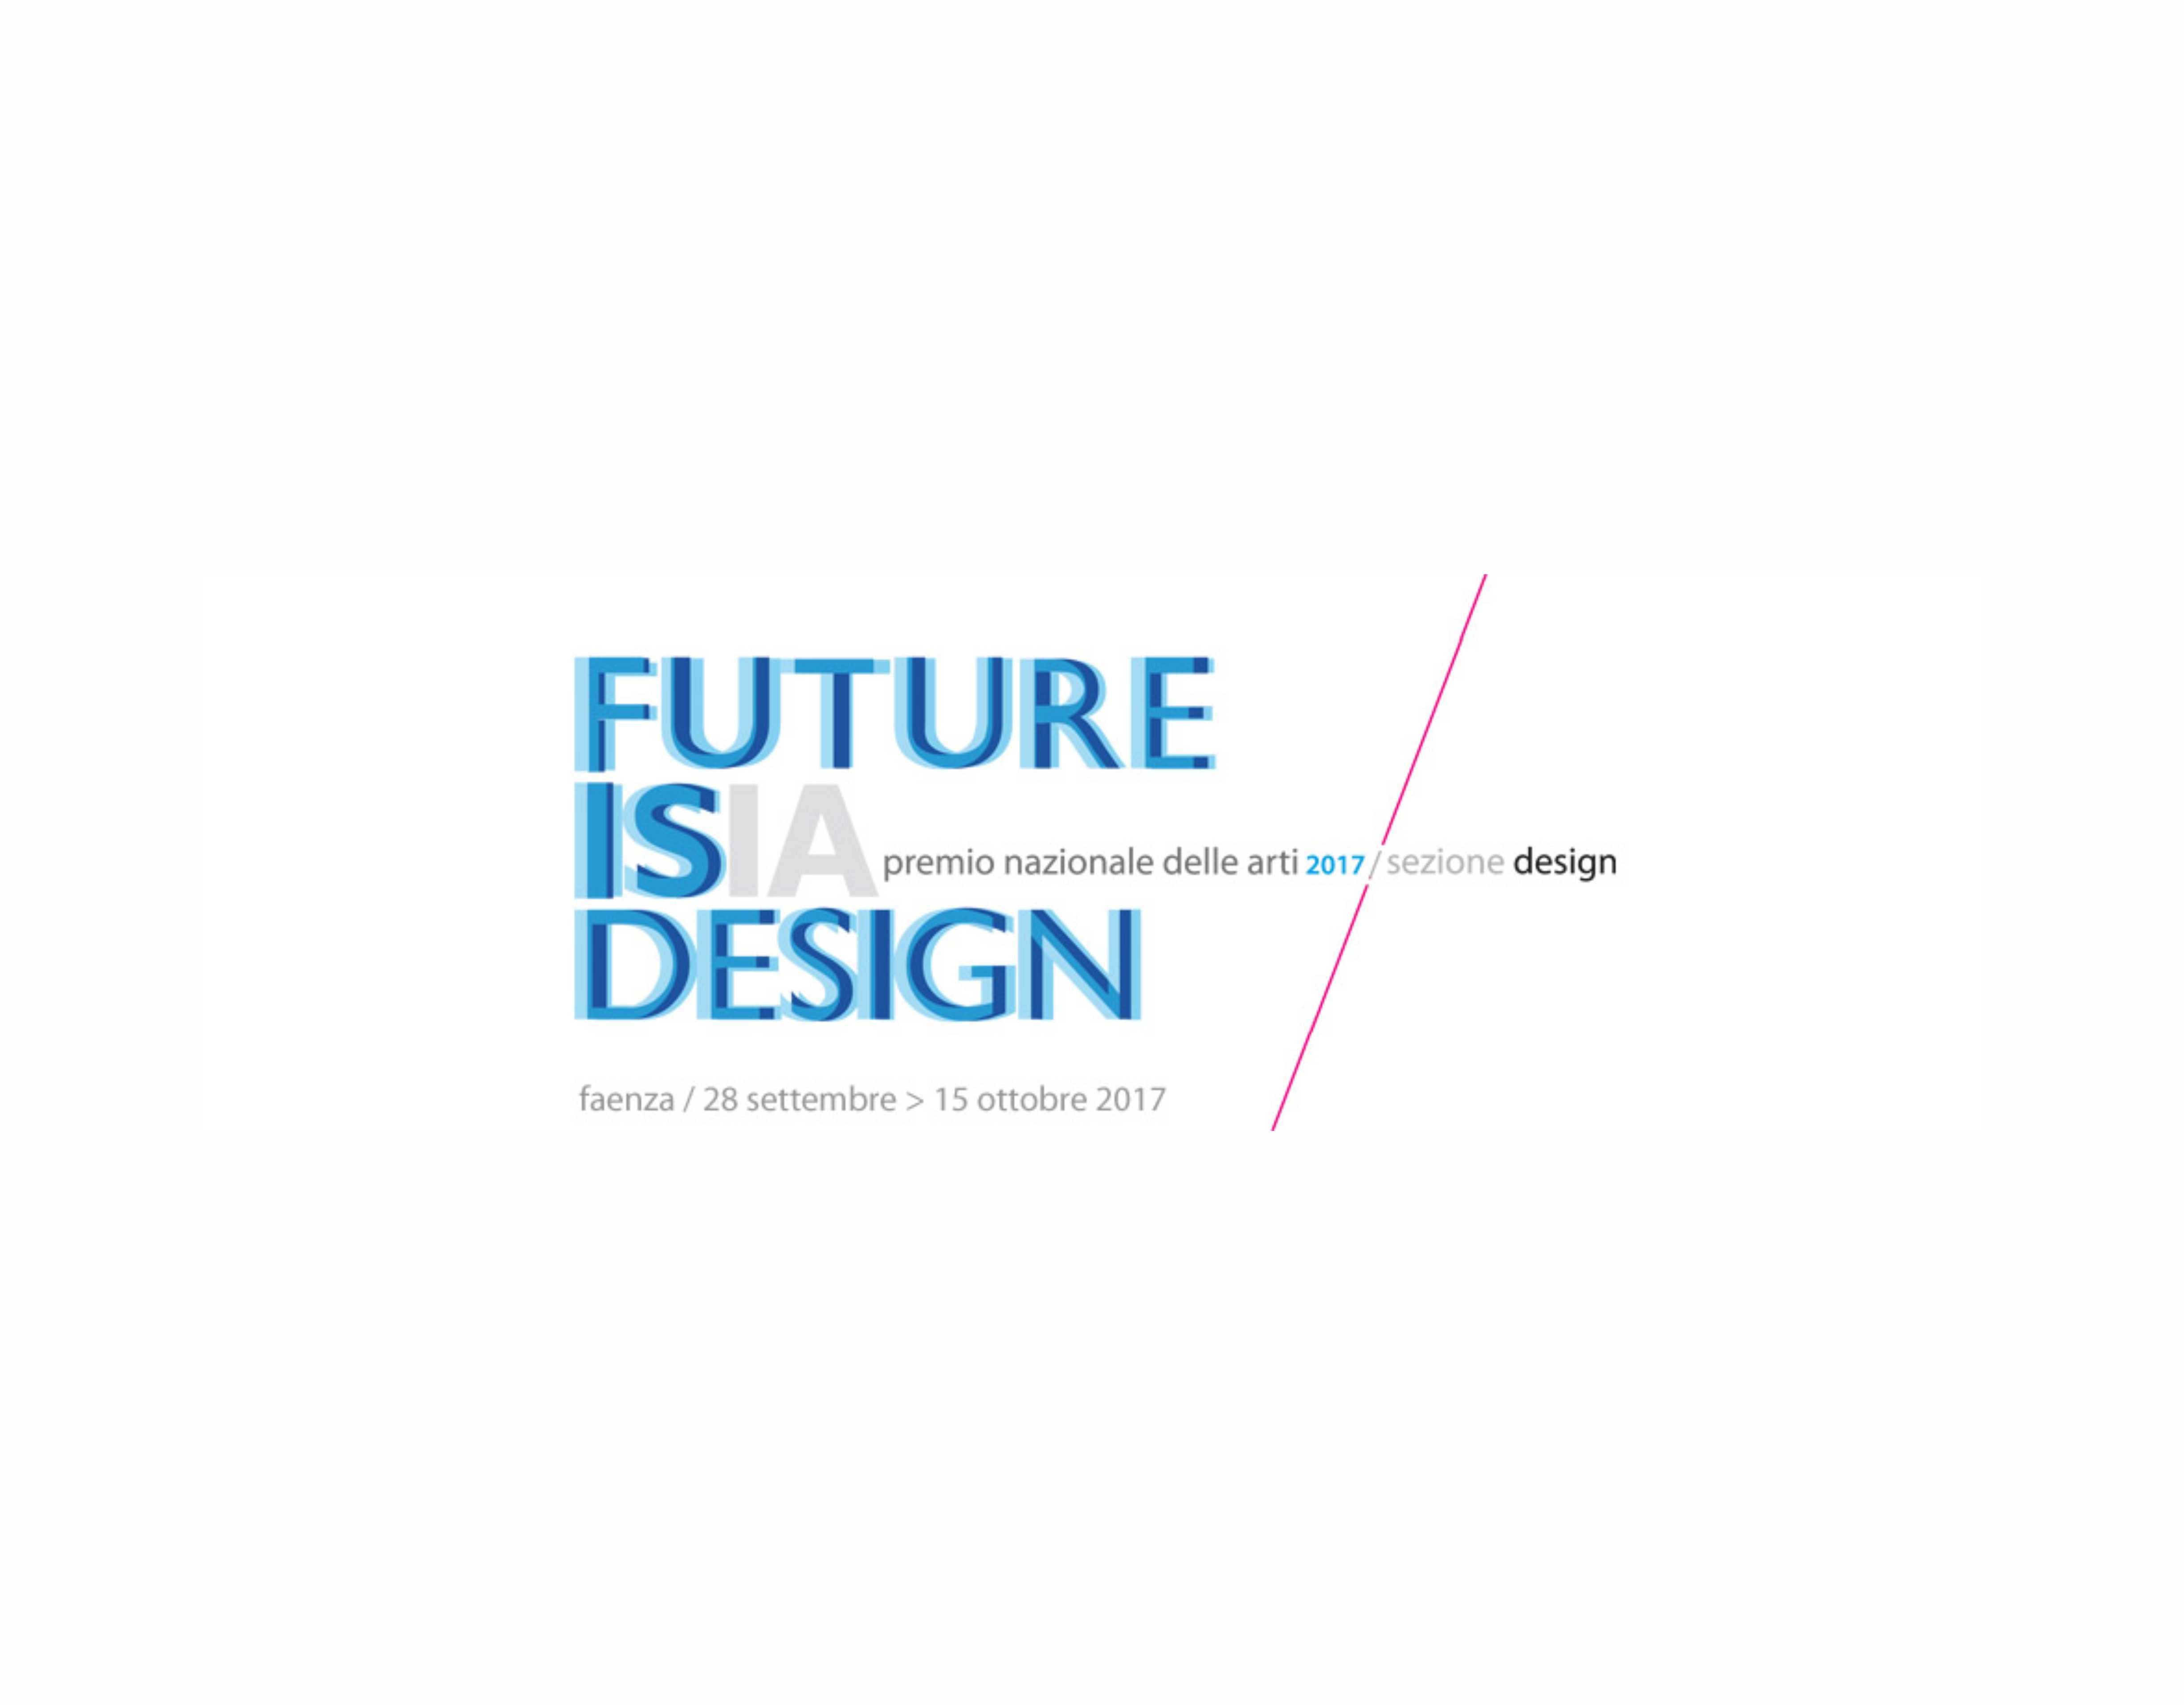 future is design